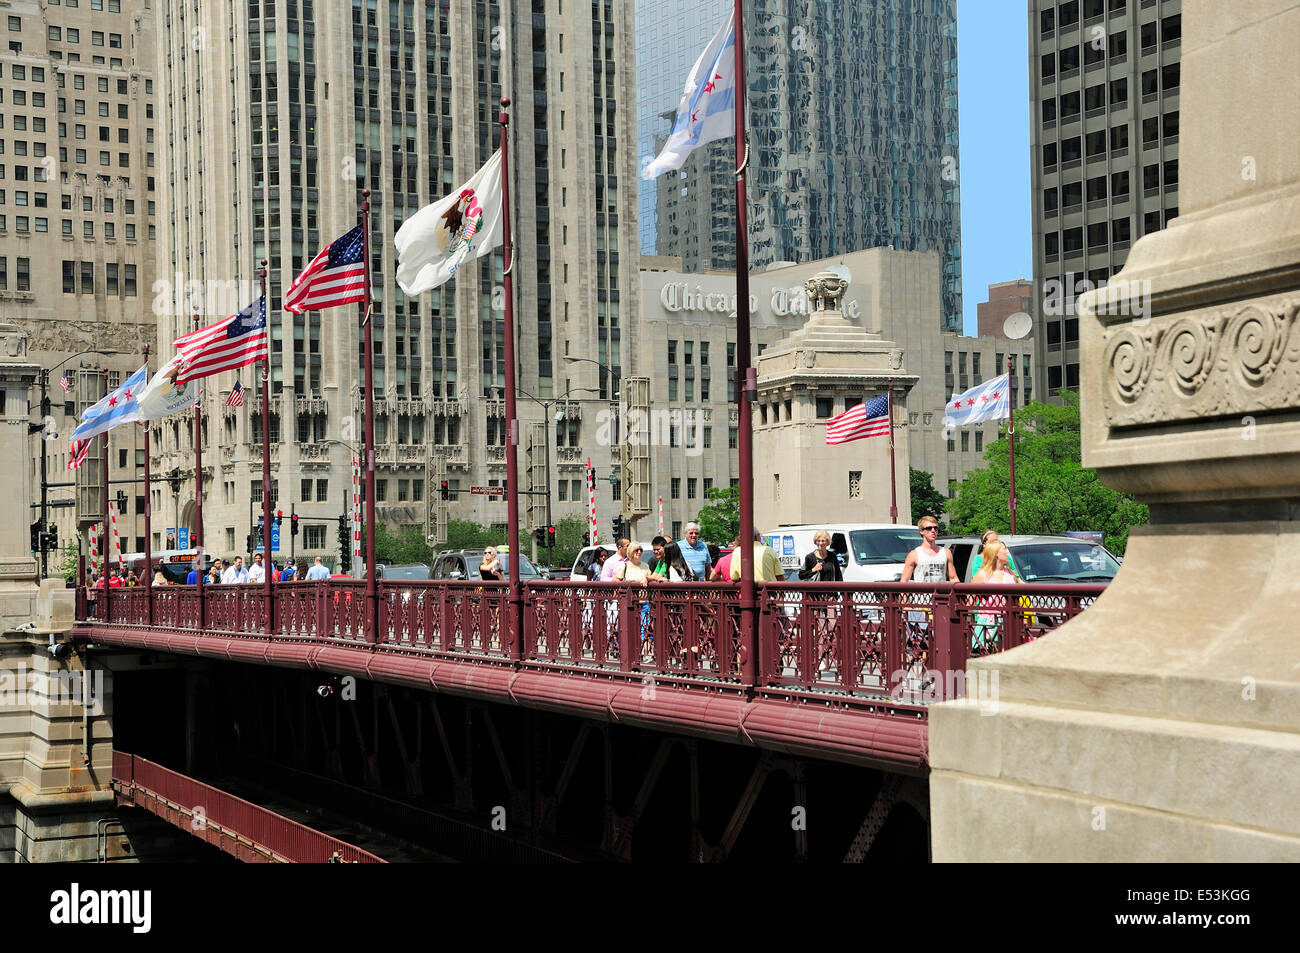 People crossing the DuSable bridge over the Chicago River. Stock Photo